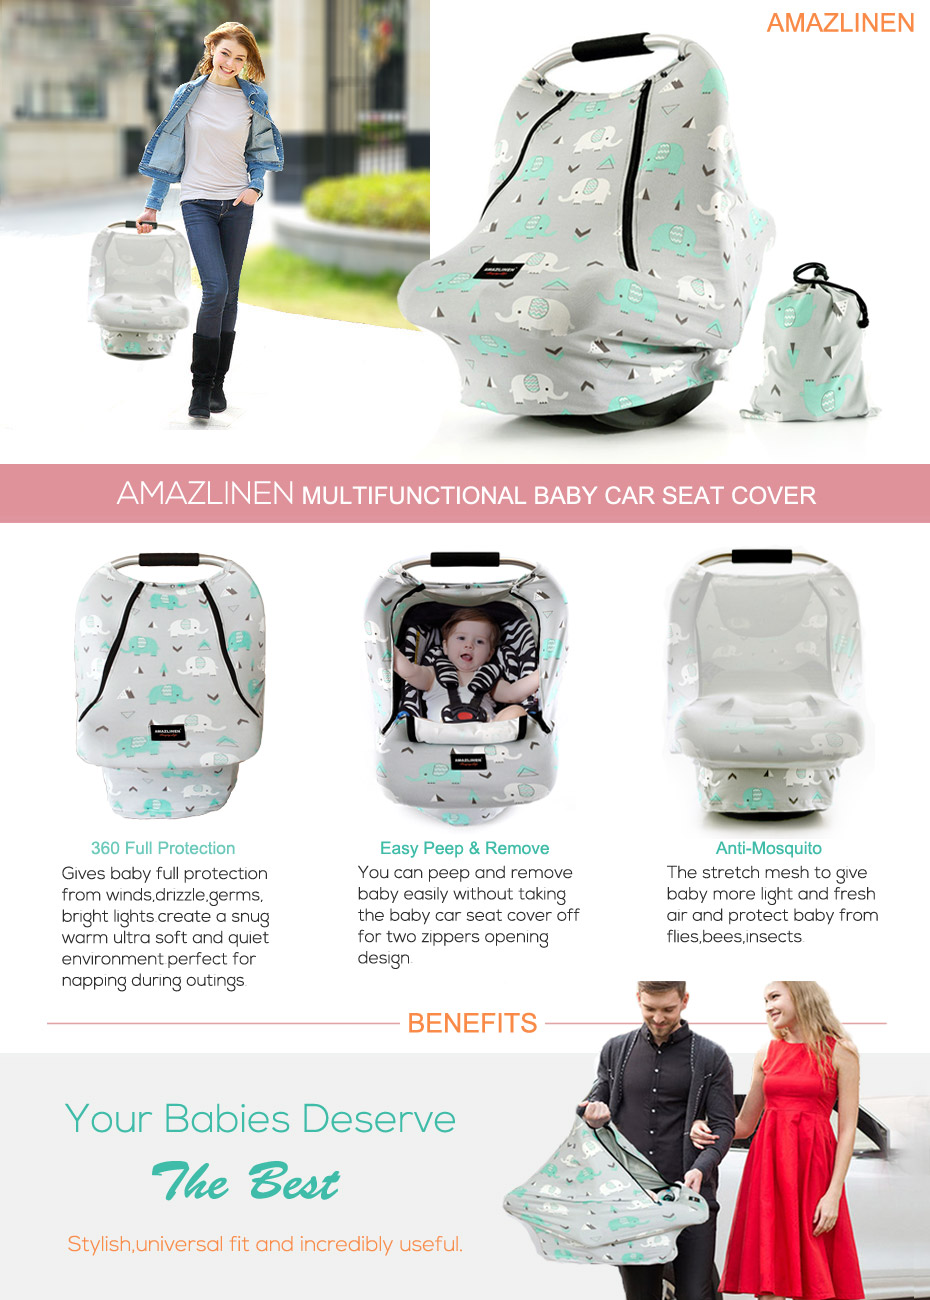 SAFETY WARNING FOR AMAZLINEN BABY CAR SEAT COVERS